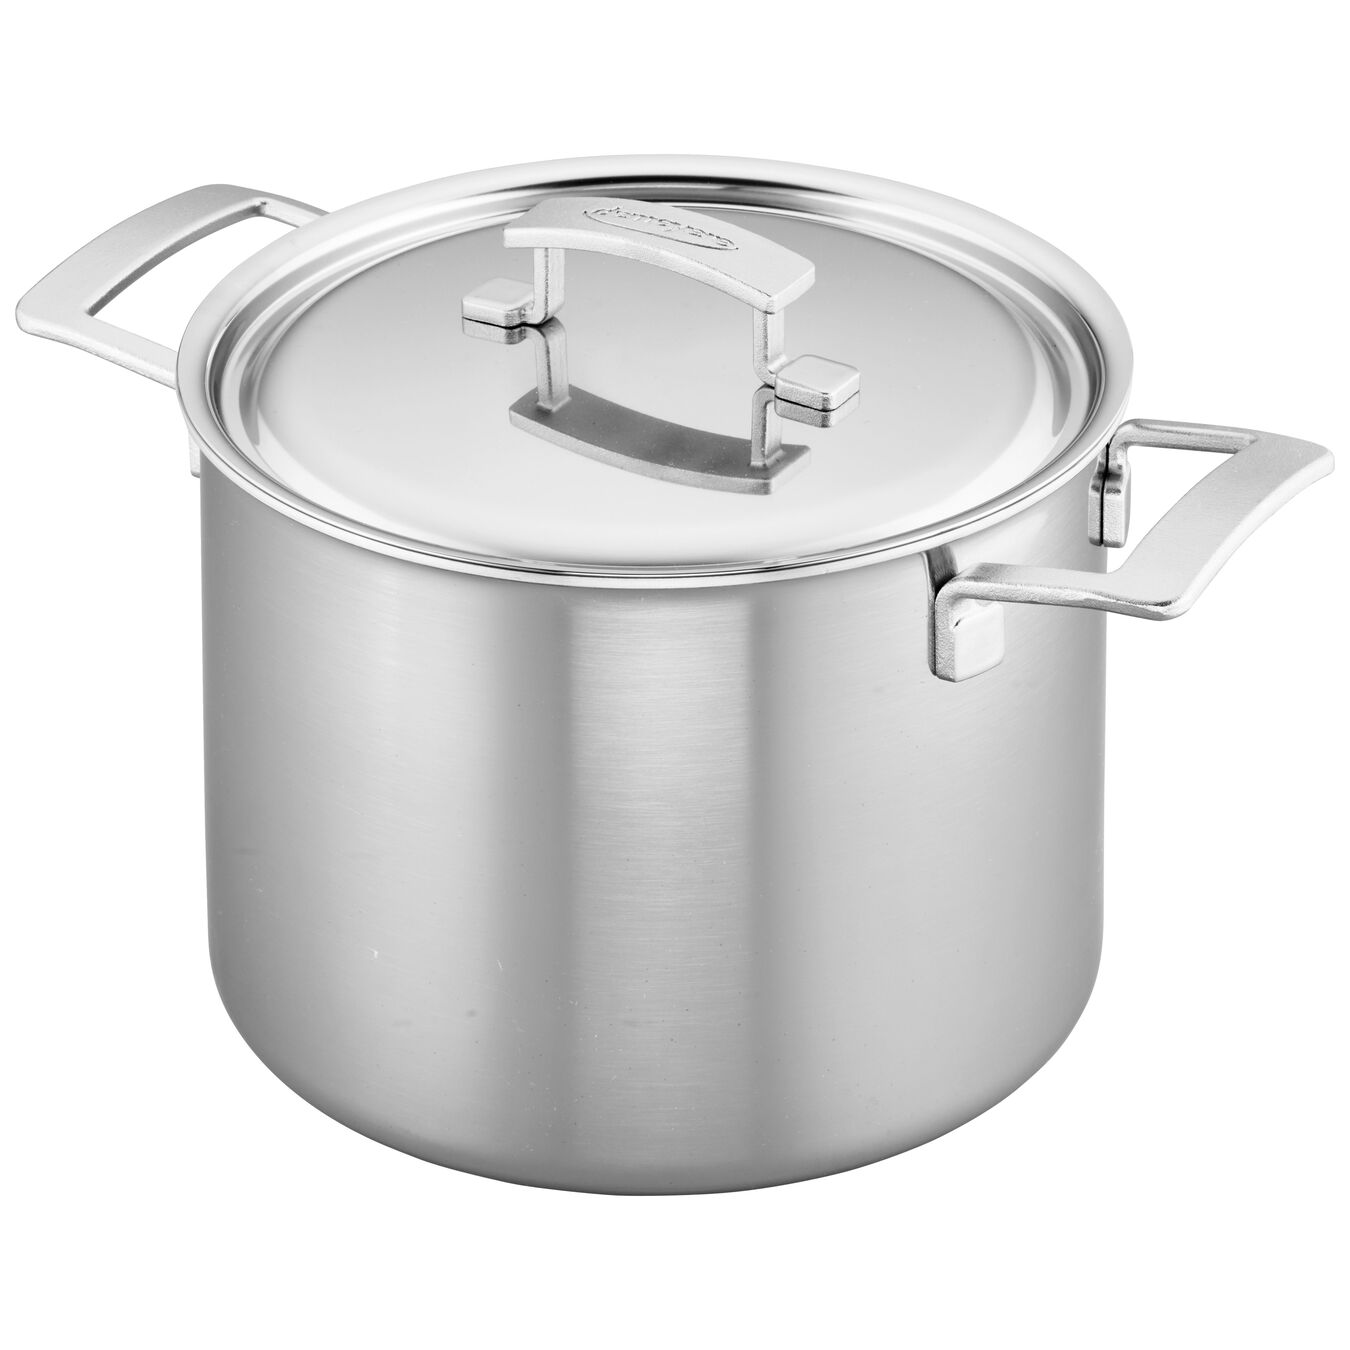 8-qt Stainless Steel Stock Pot,,large 2